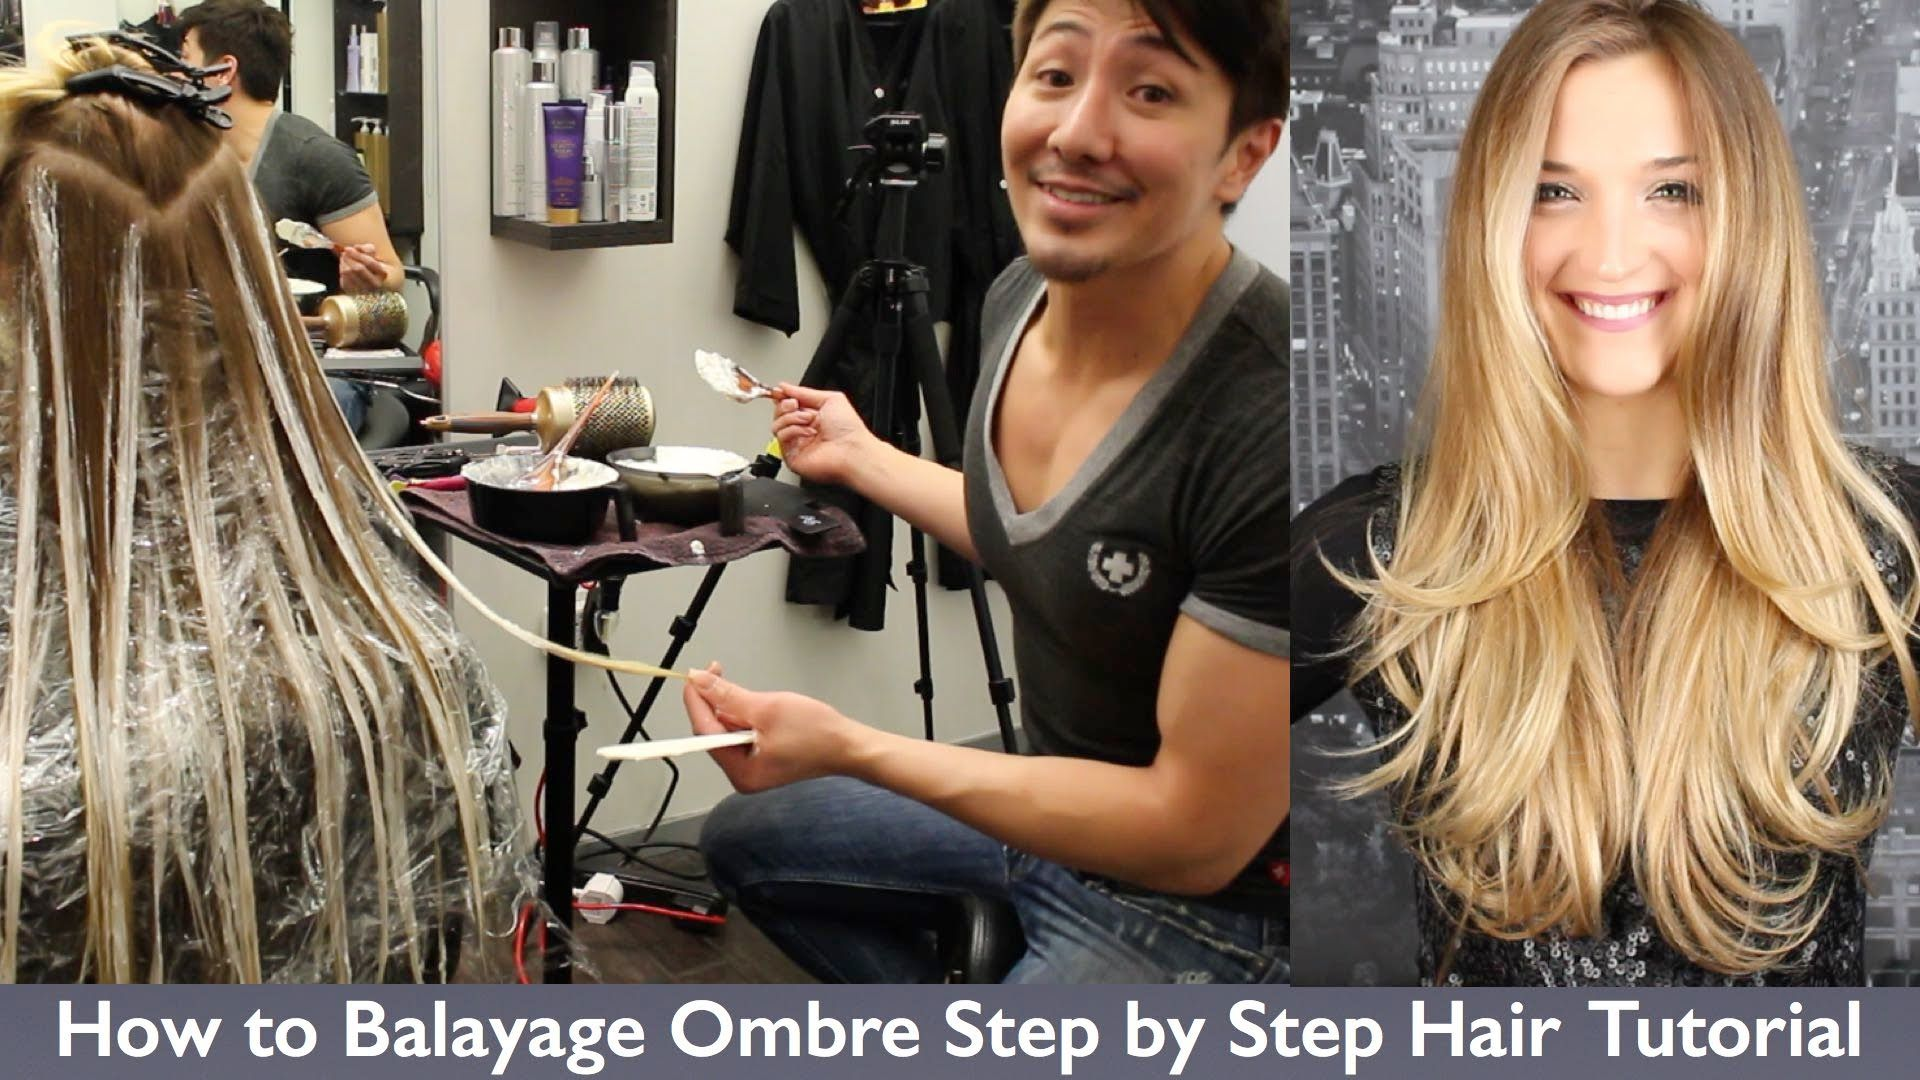 How To Balayage Ombre Step By Step Hair Tutorial Balayage Ombre